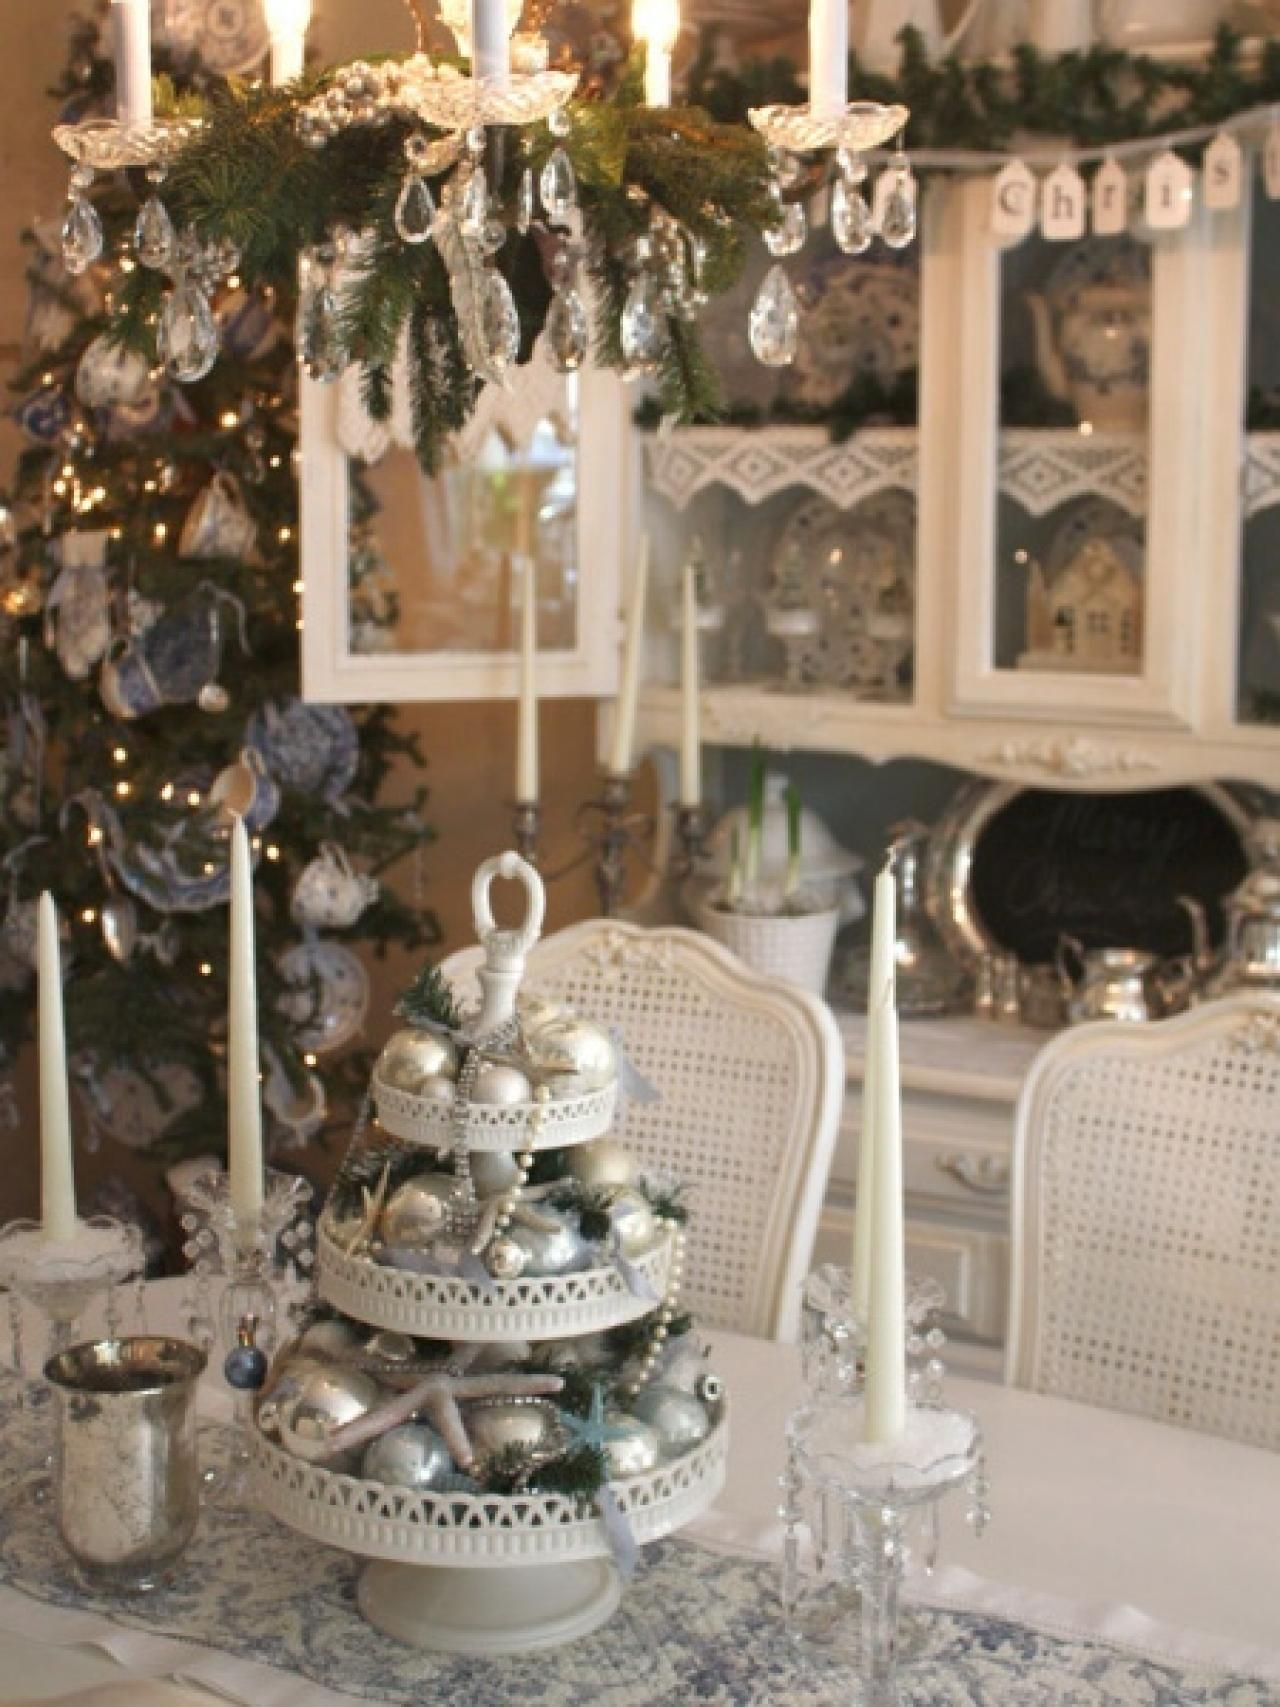 Silver and white christmas table decorations - 28 Christmas Table Decorations Settings